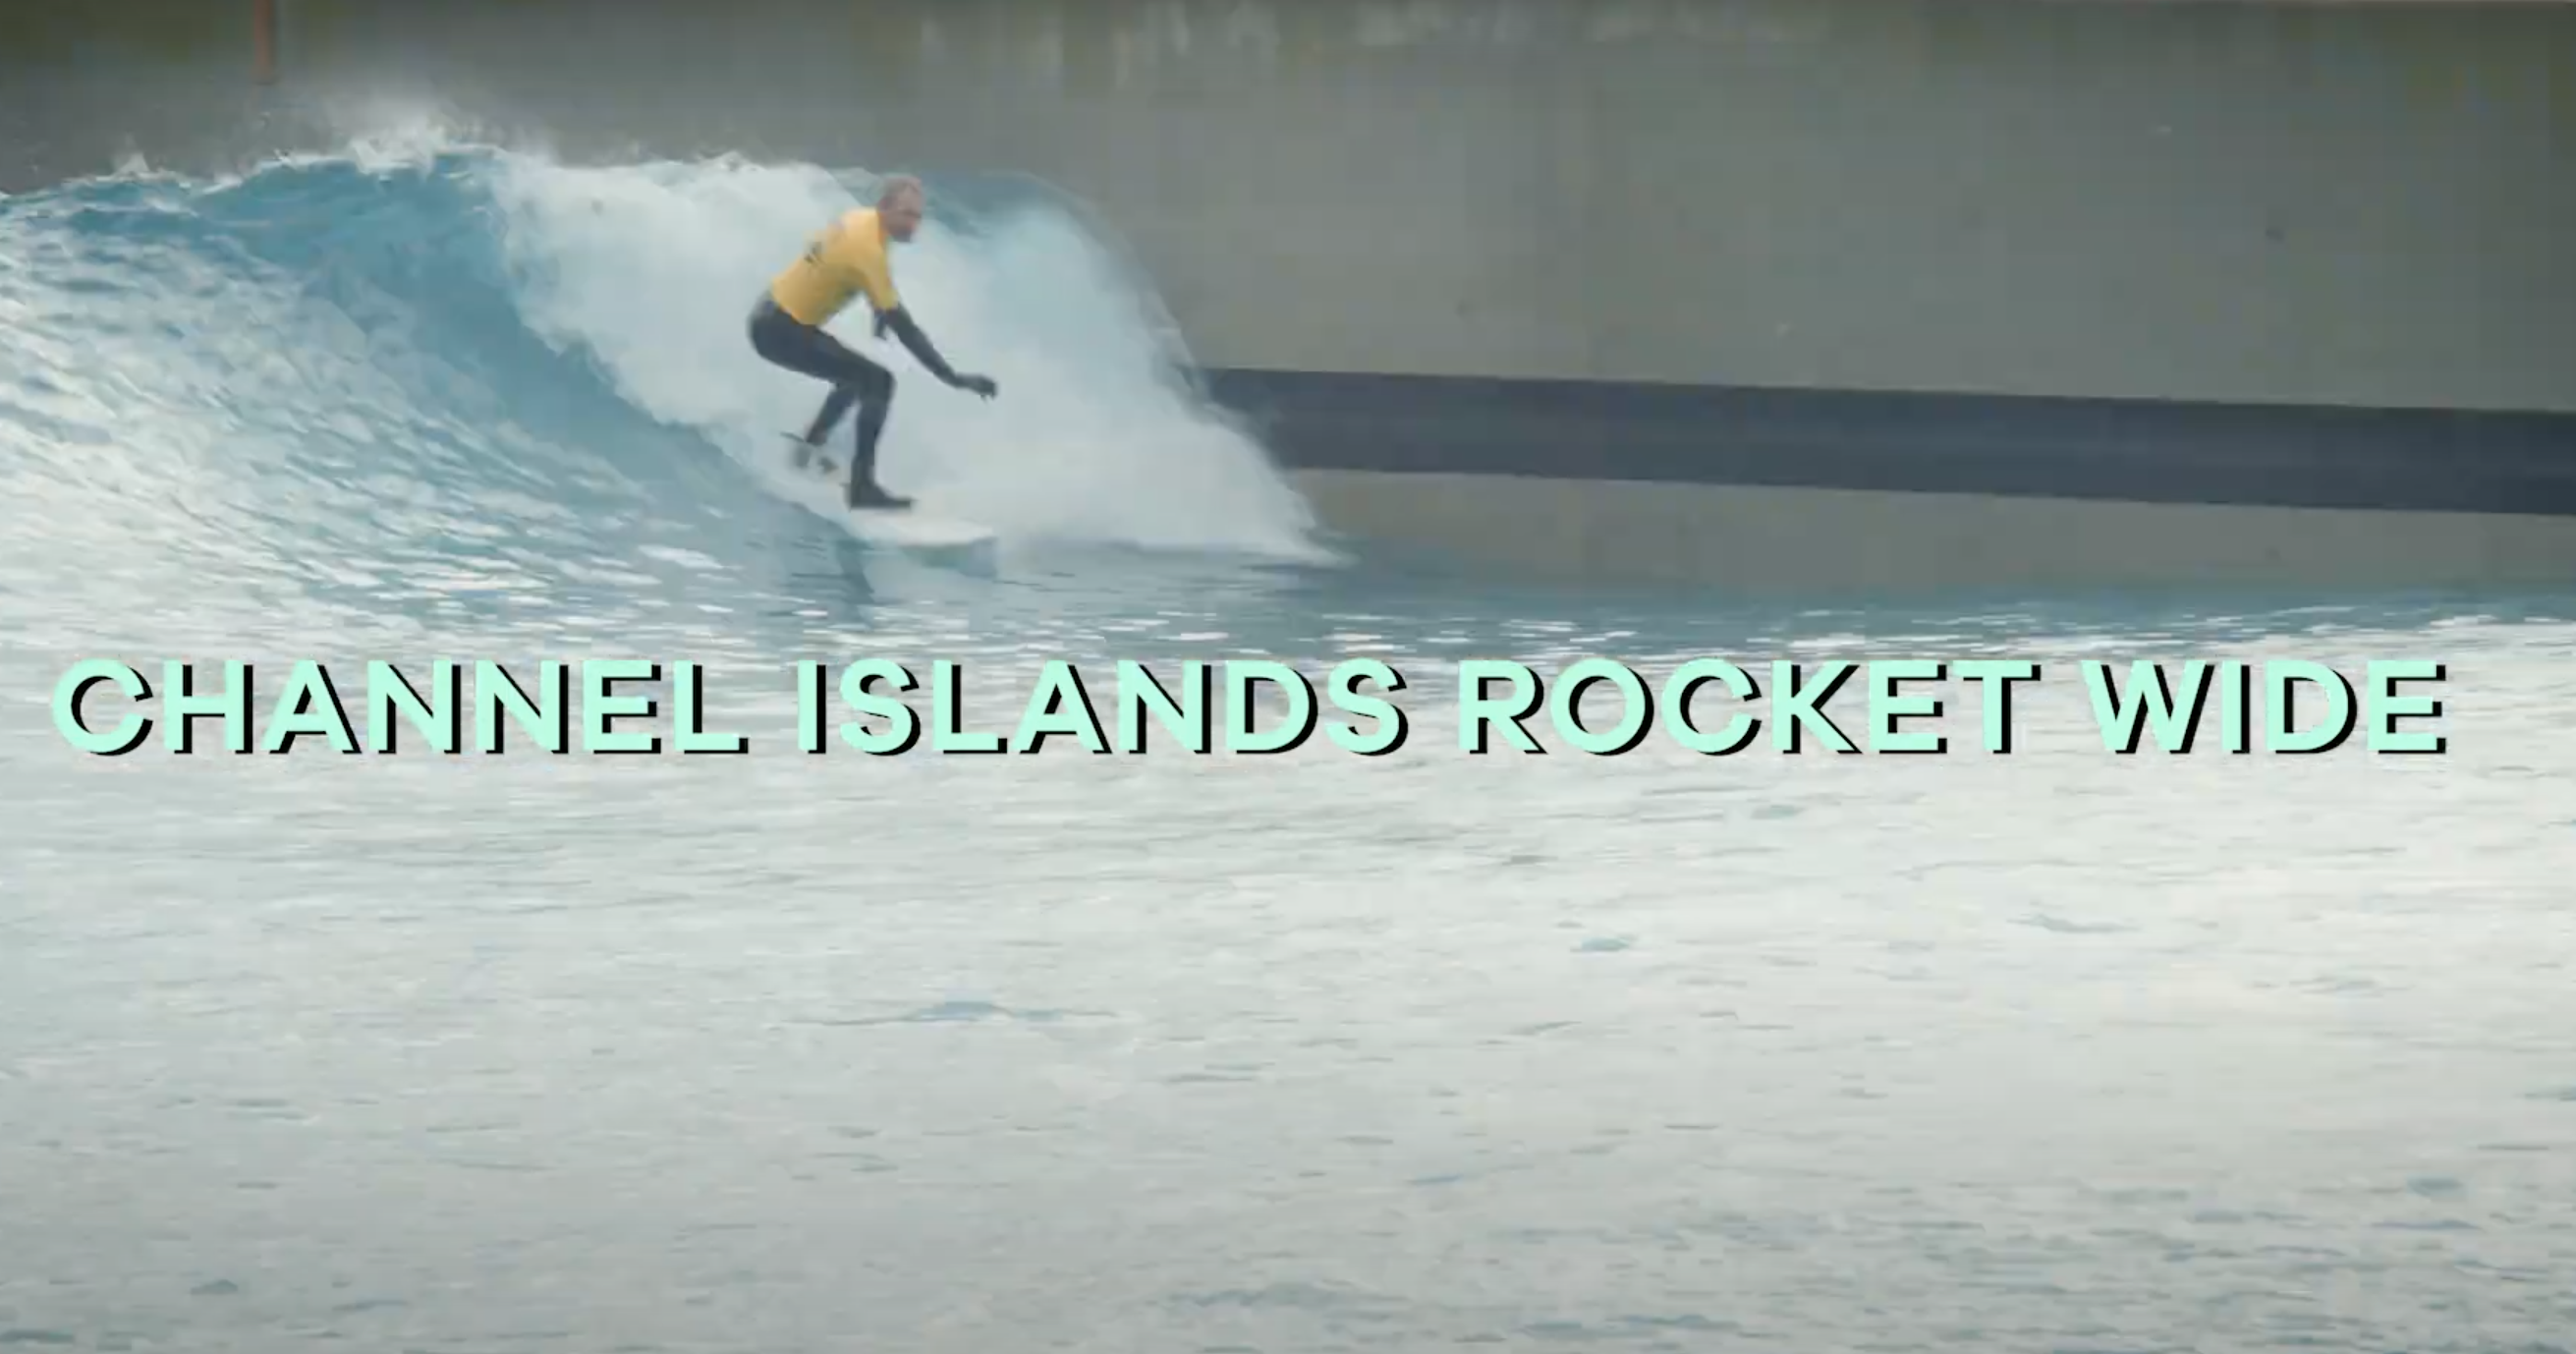 Channel Islands Rocket Wide Surfboard Review | The Test Tub